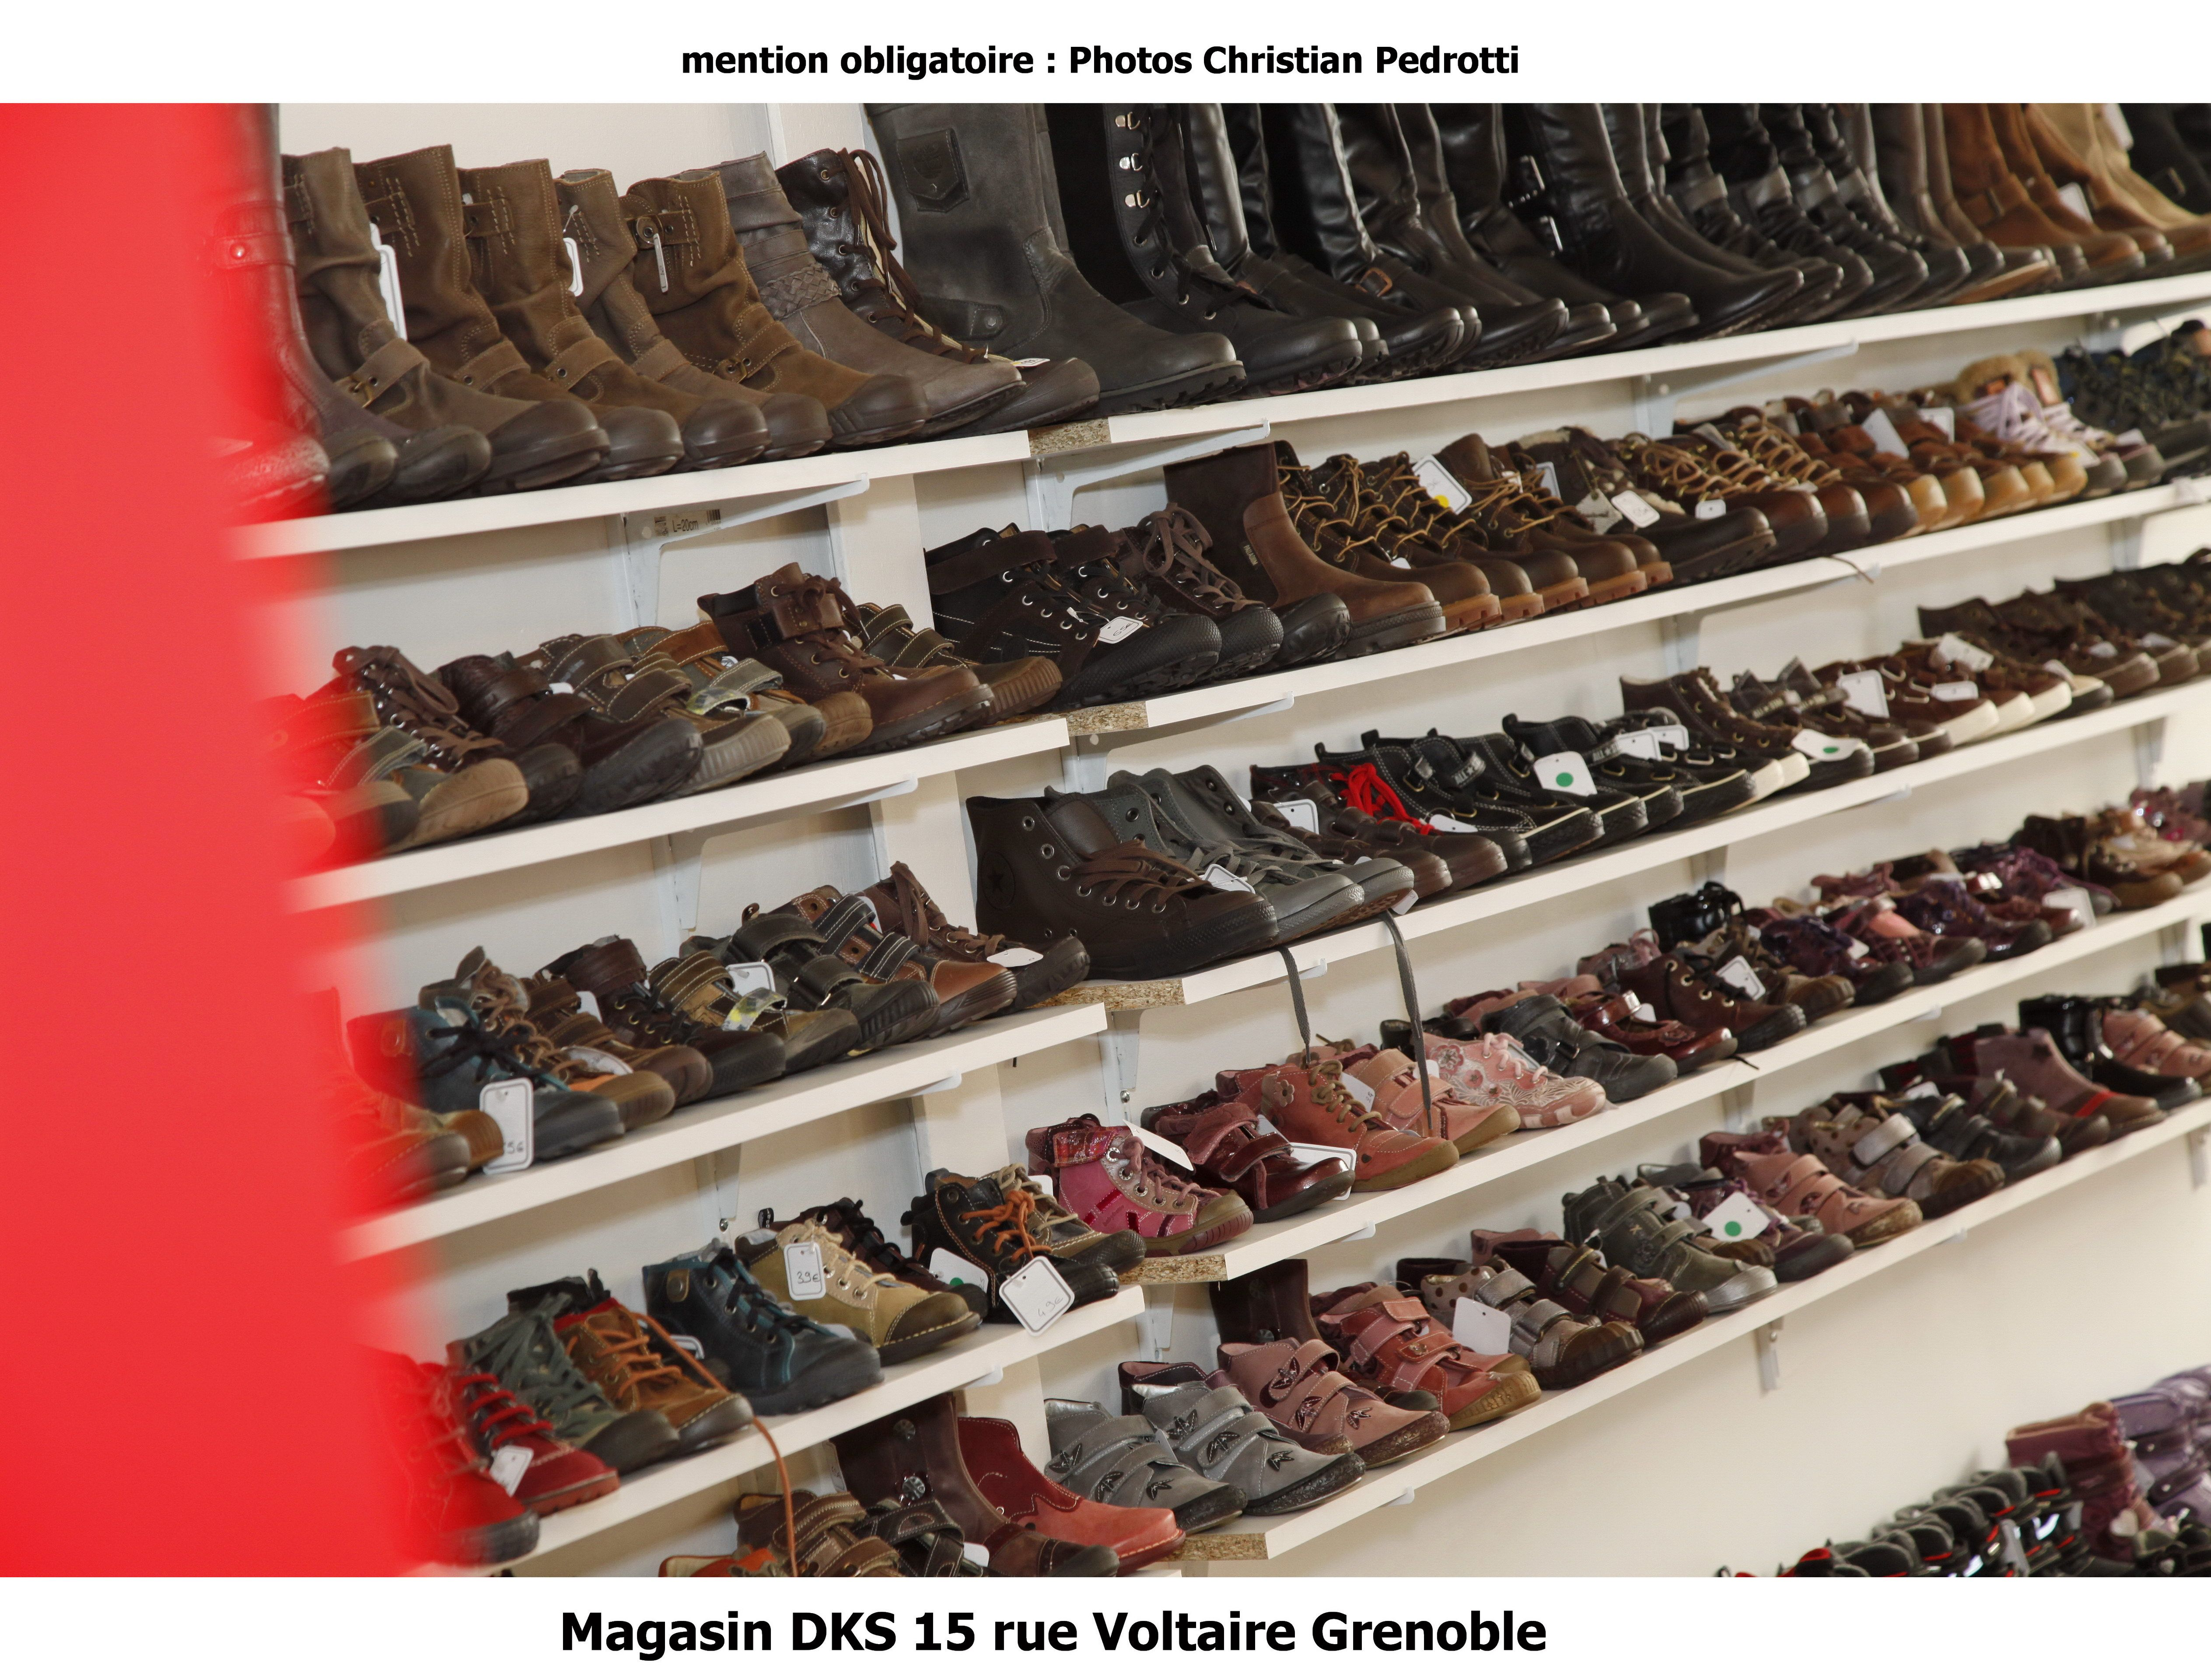 8d133a441344f 15 rue voltaire - Grenoble | DKS Magasin